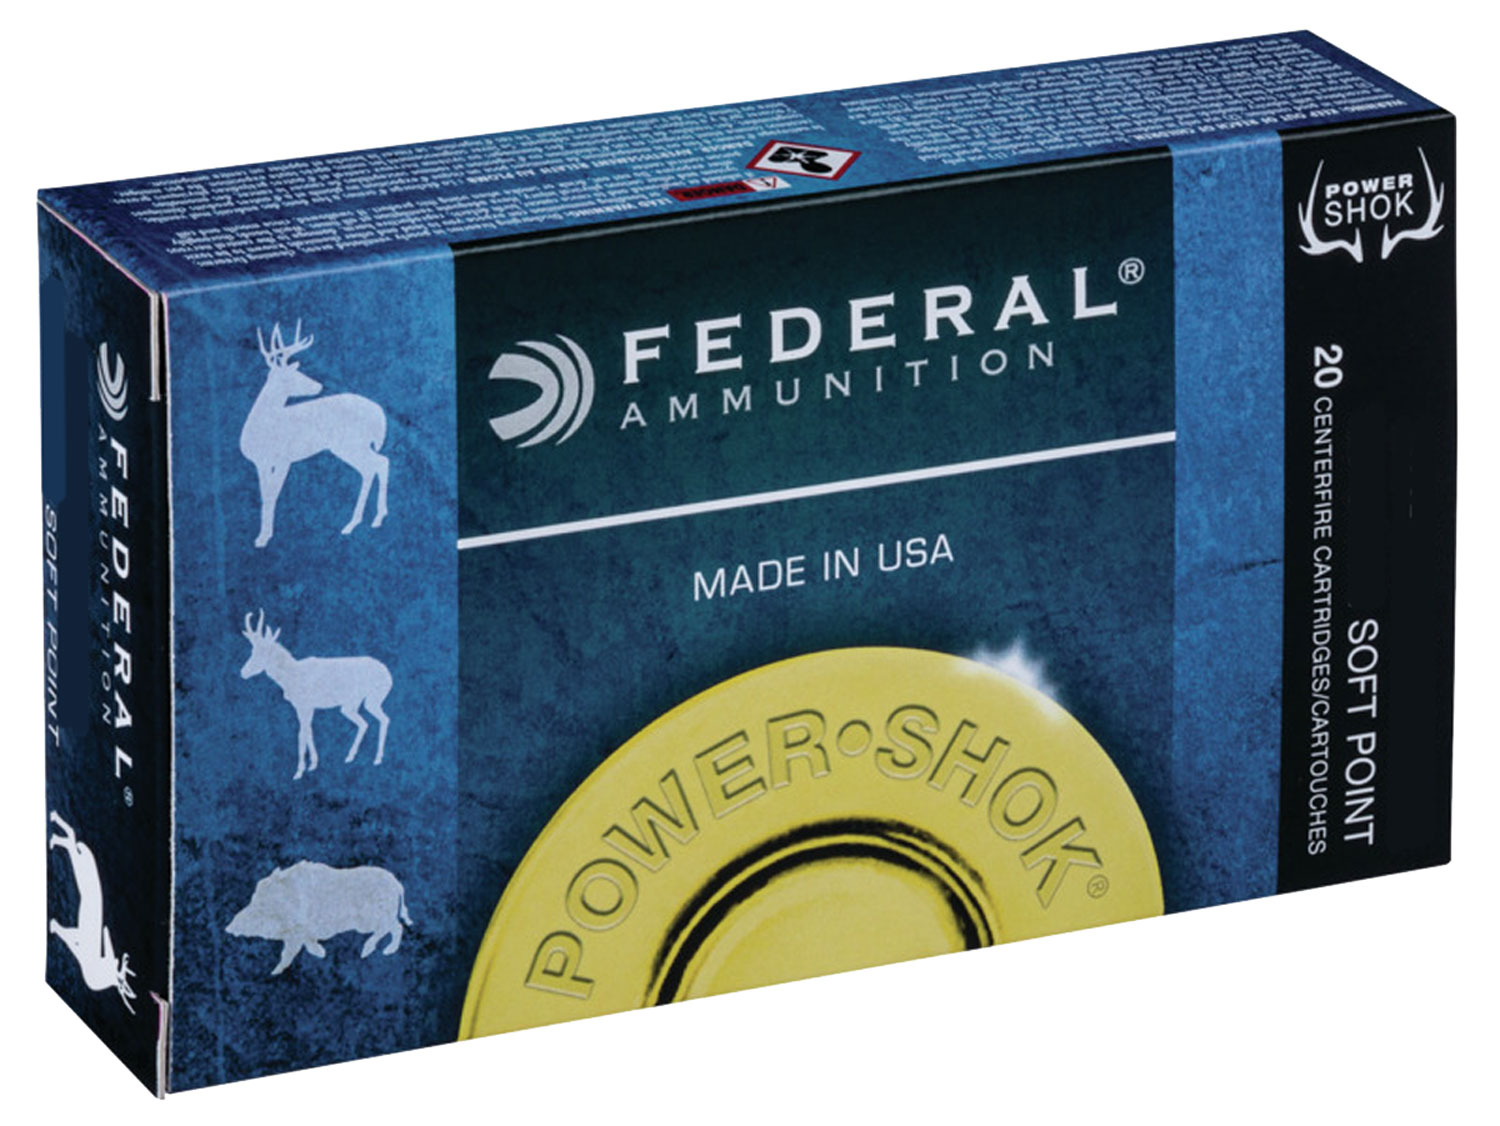 Federal 65CDT1 Non-Typical Whitetail  6.5 Creedmoor 140 GR Soft Point 20 Bx/ 10 Cs